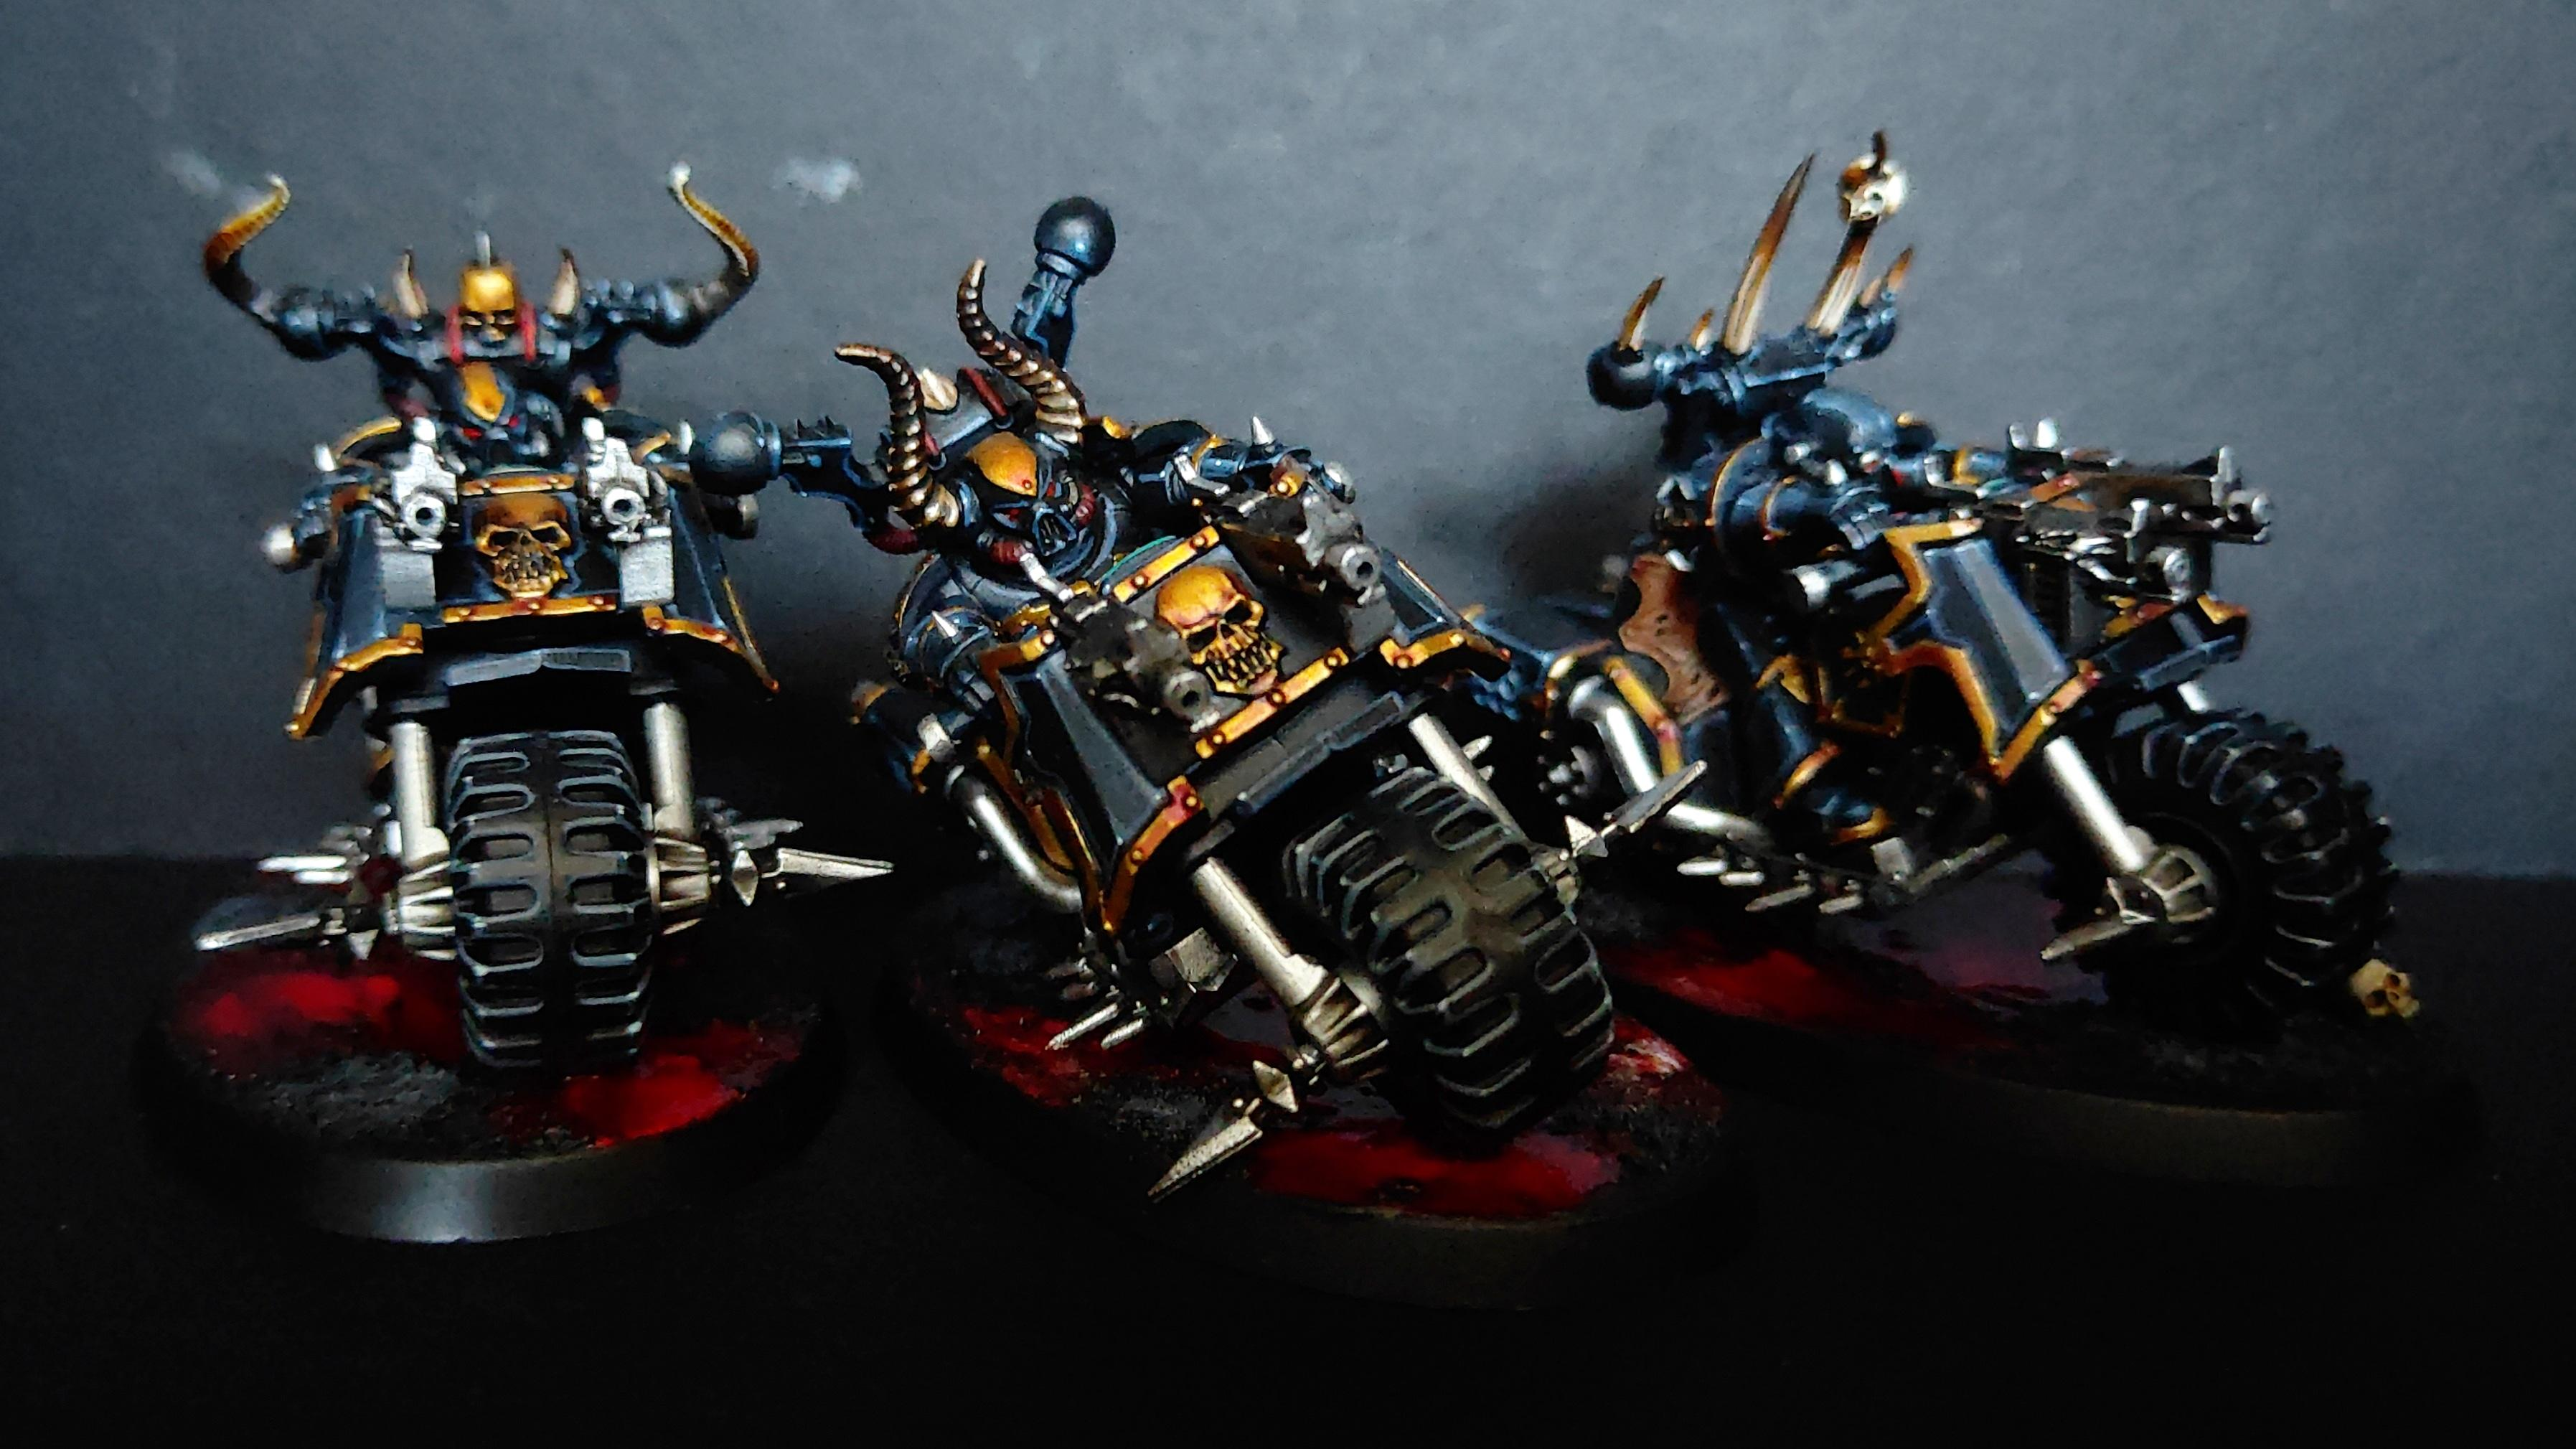 Bike, Black Legion, Chaos, Chaos Bikers, Chaos Space Marines, Chaos Undivided, Heretic Astartes, Possessed, Sin Eaters, Warhammer 40,000